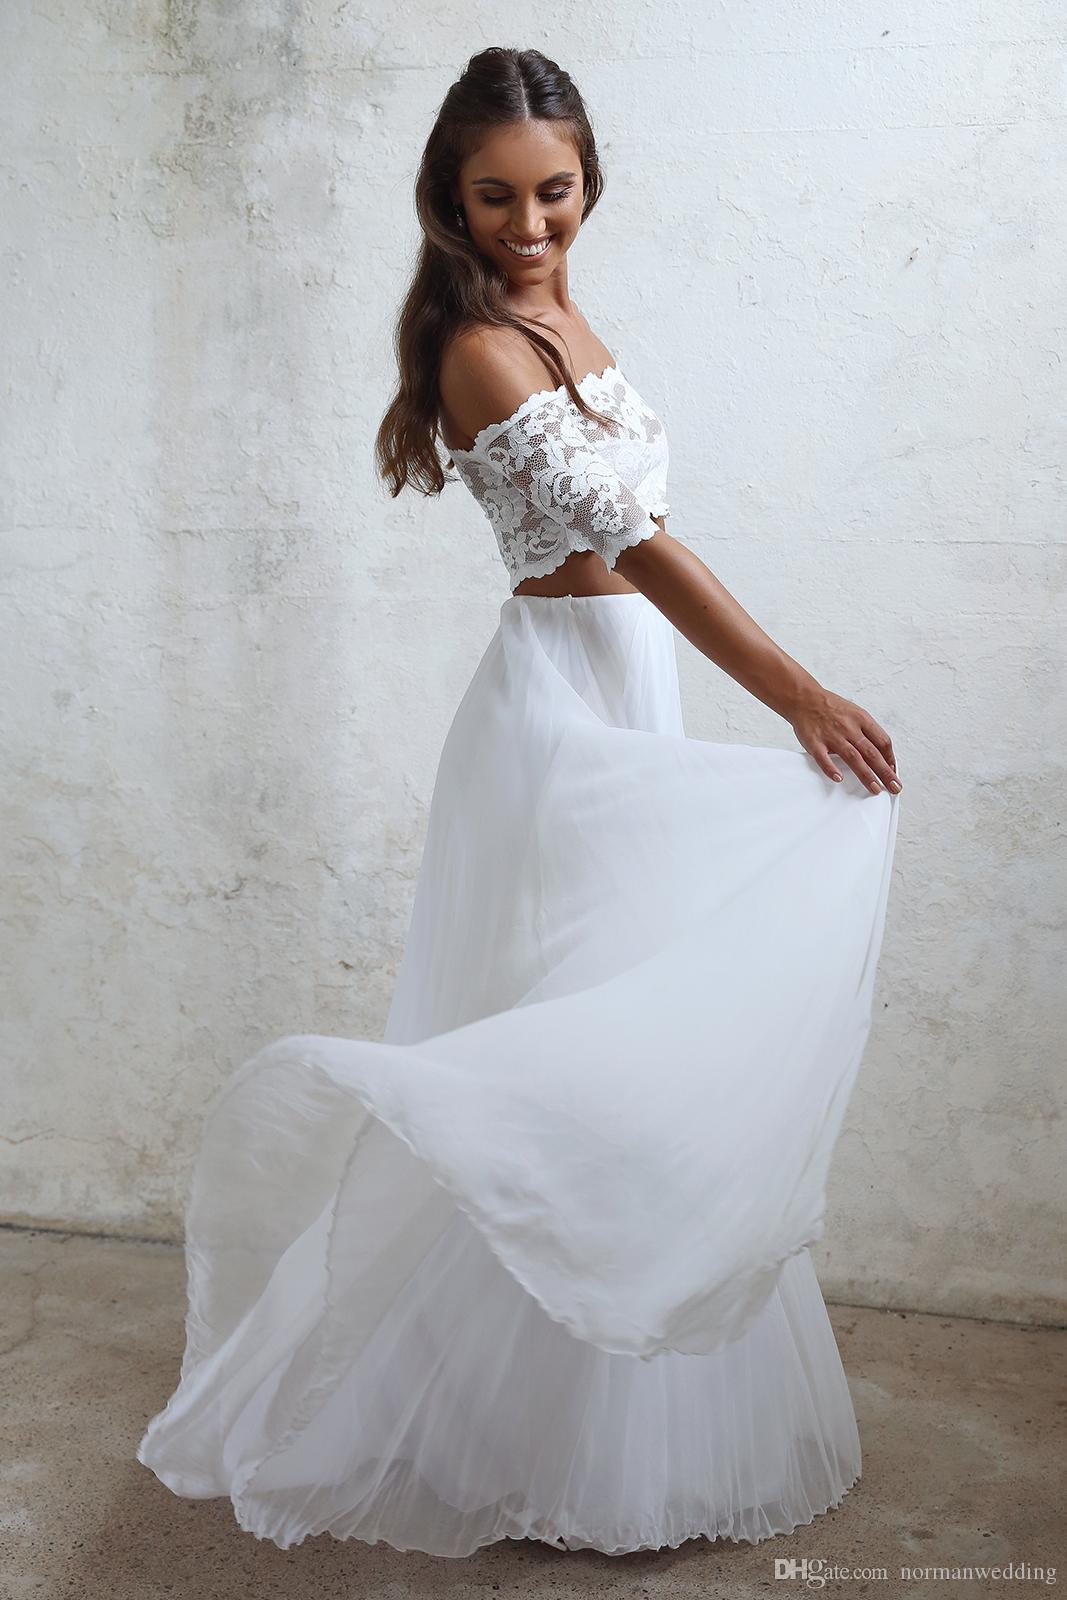 Discount Seductive Lace 2 Two Piece Wedding Dresses Summer Chiffon